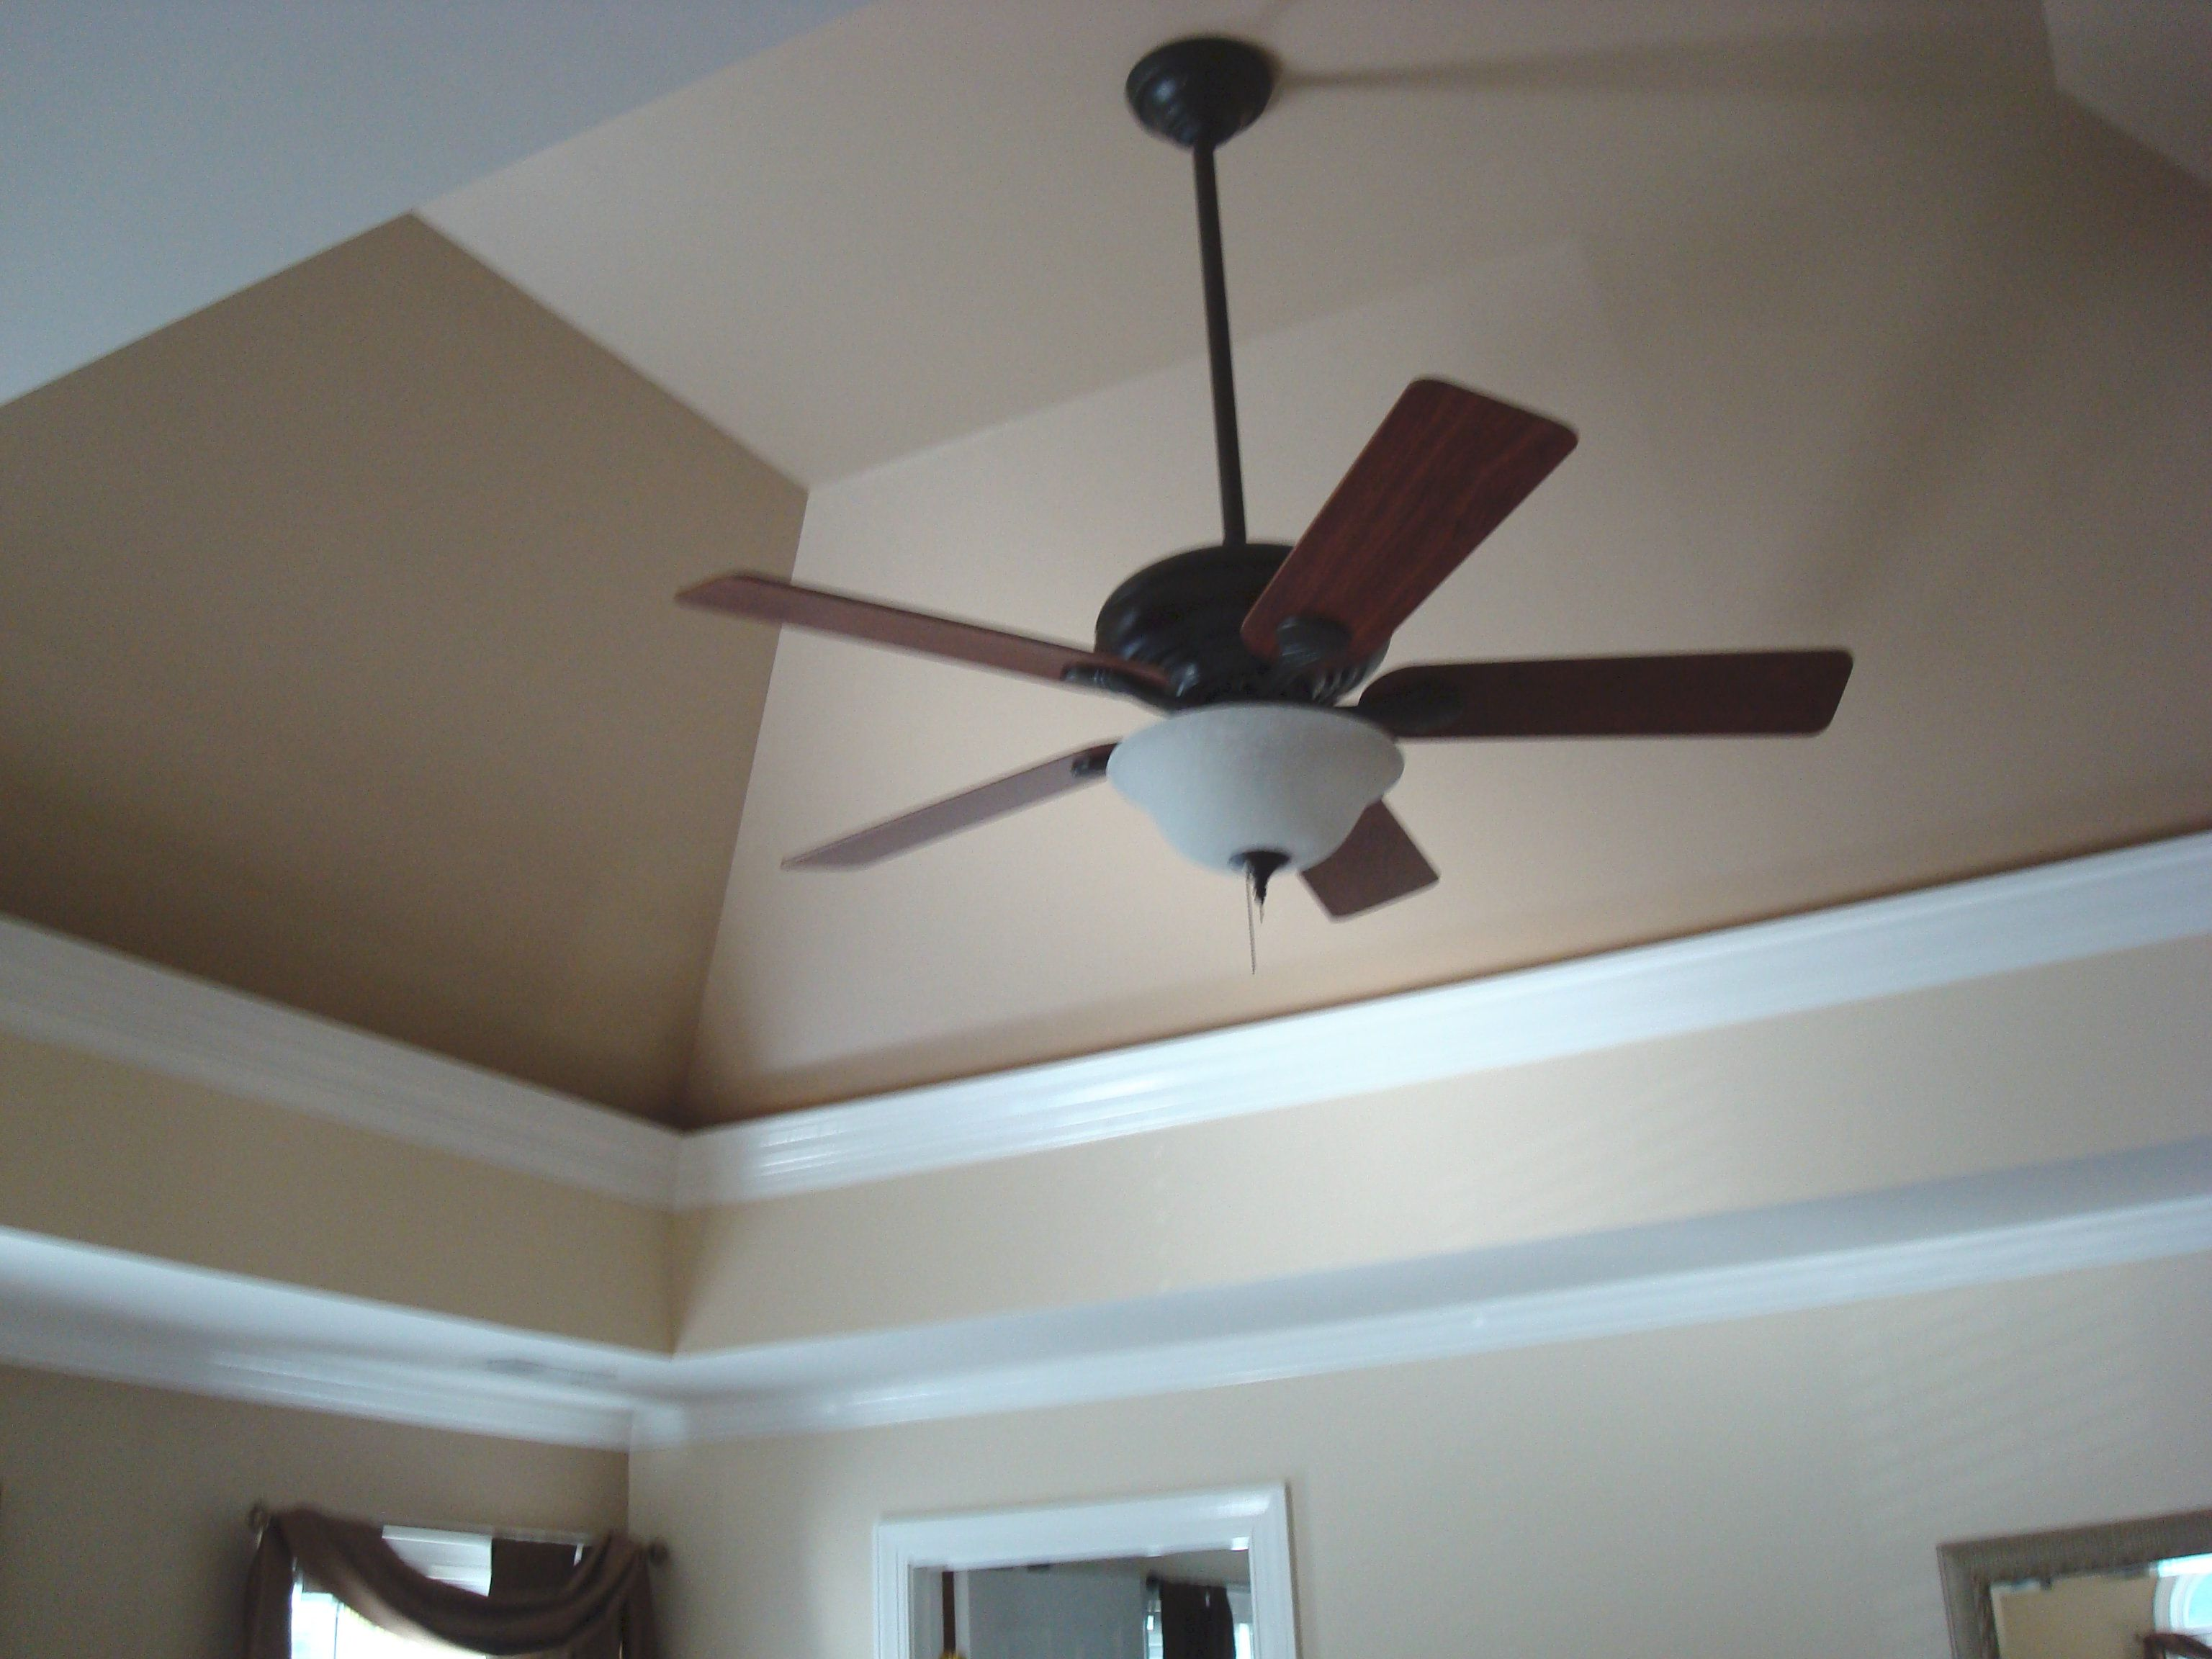 It S Standard Procedure To Repaint Your Walls A Color While Keeping The Ceiling White We Ve Been Informed Painted Ceiling Beige Ceiling Paint Colored Ceiling